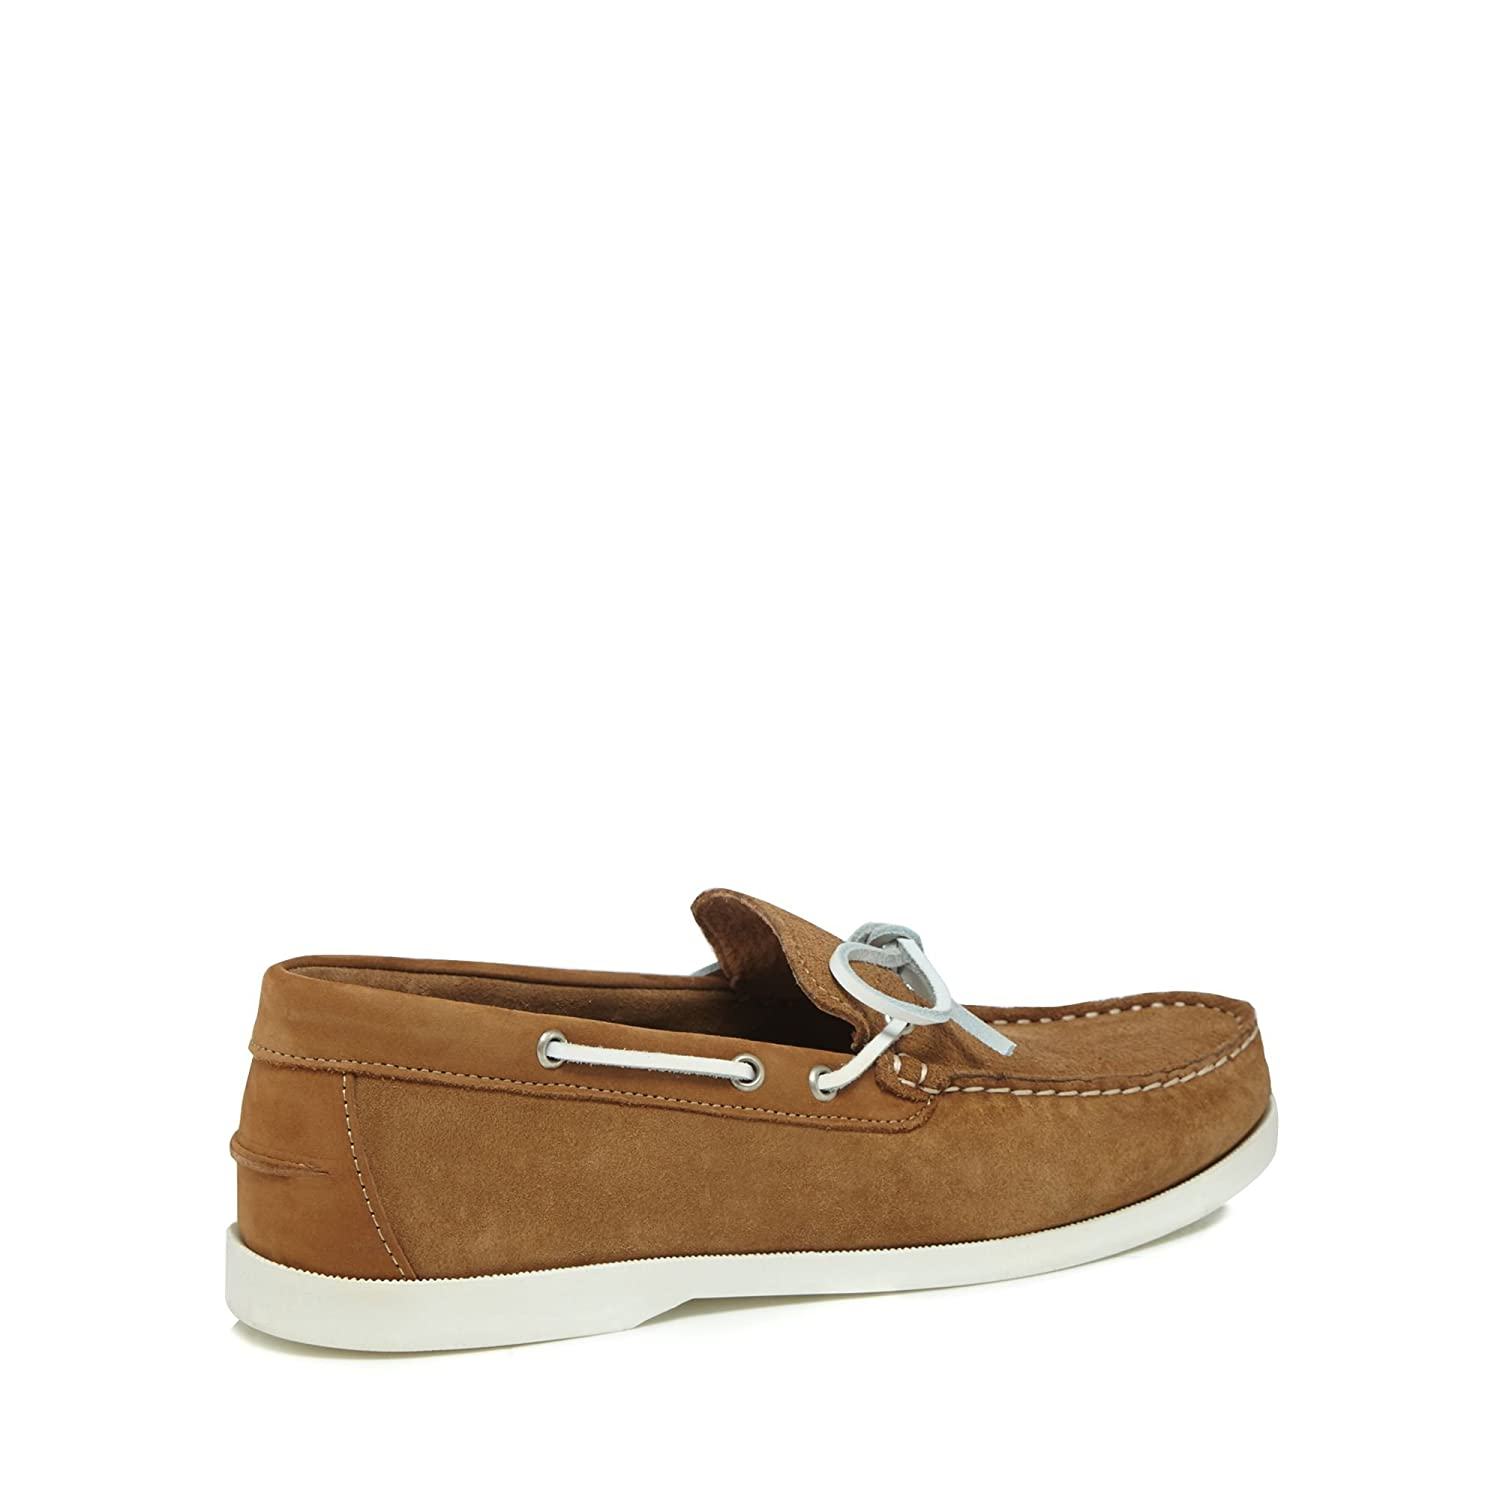 Tan suede 'Burdock' loafers cheap sale fast delivery discount official site really cheap explore cheap price discount 2015 new SV3g9MK